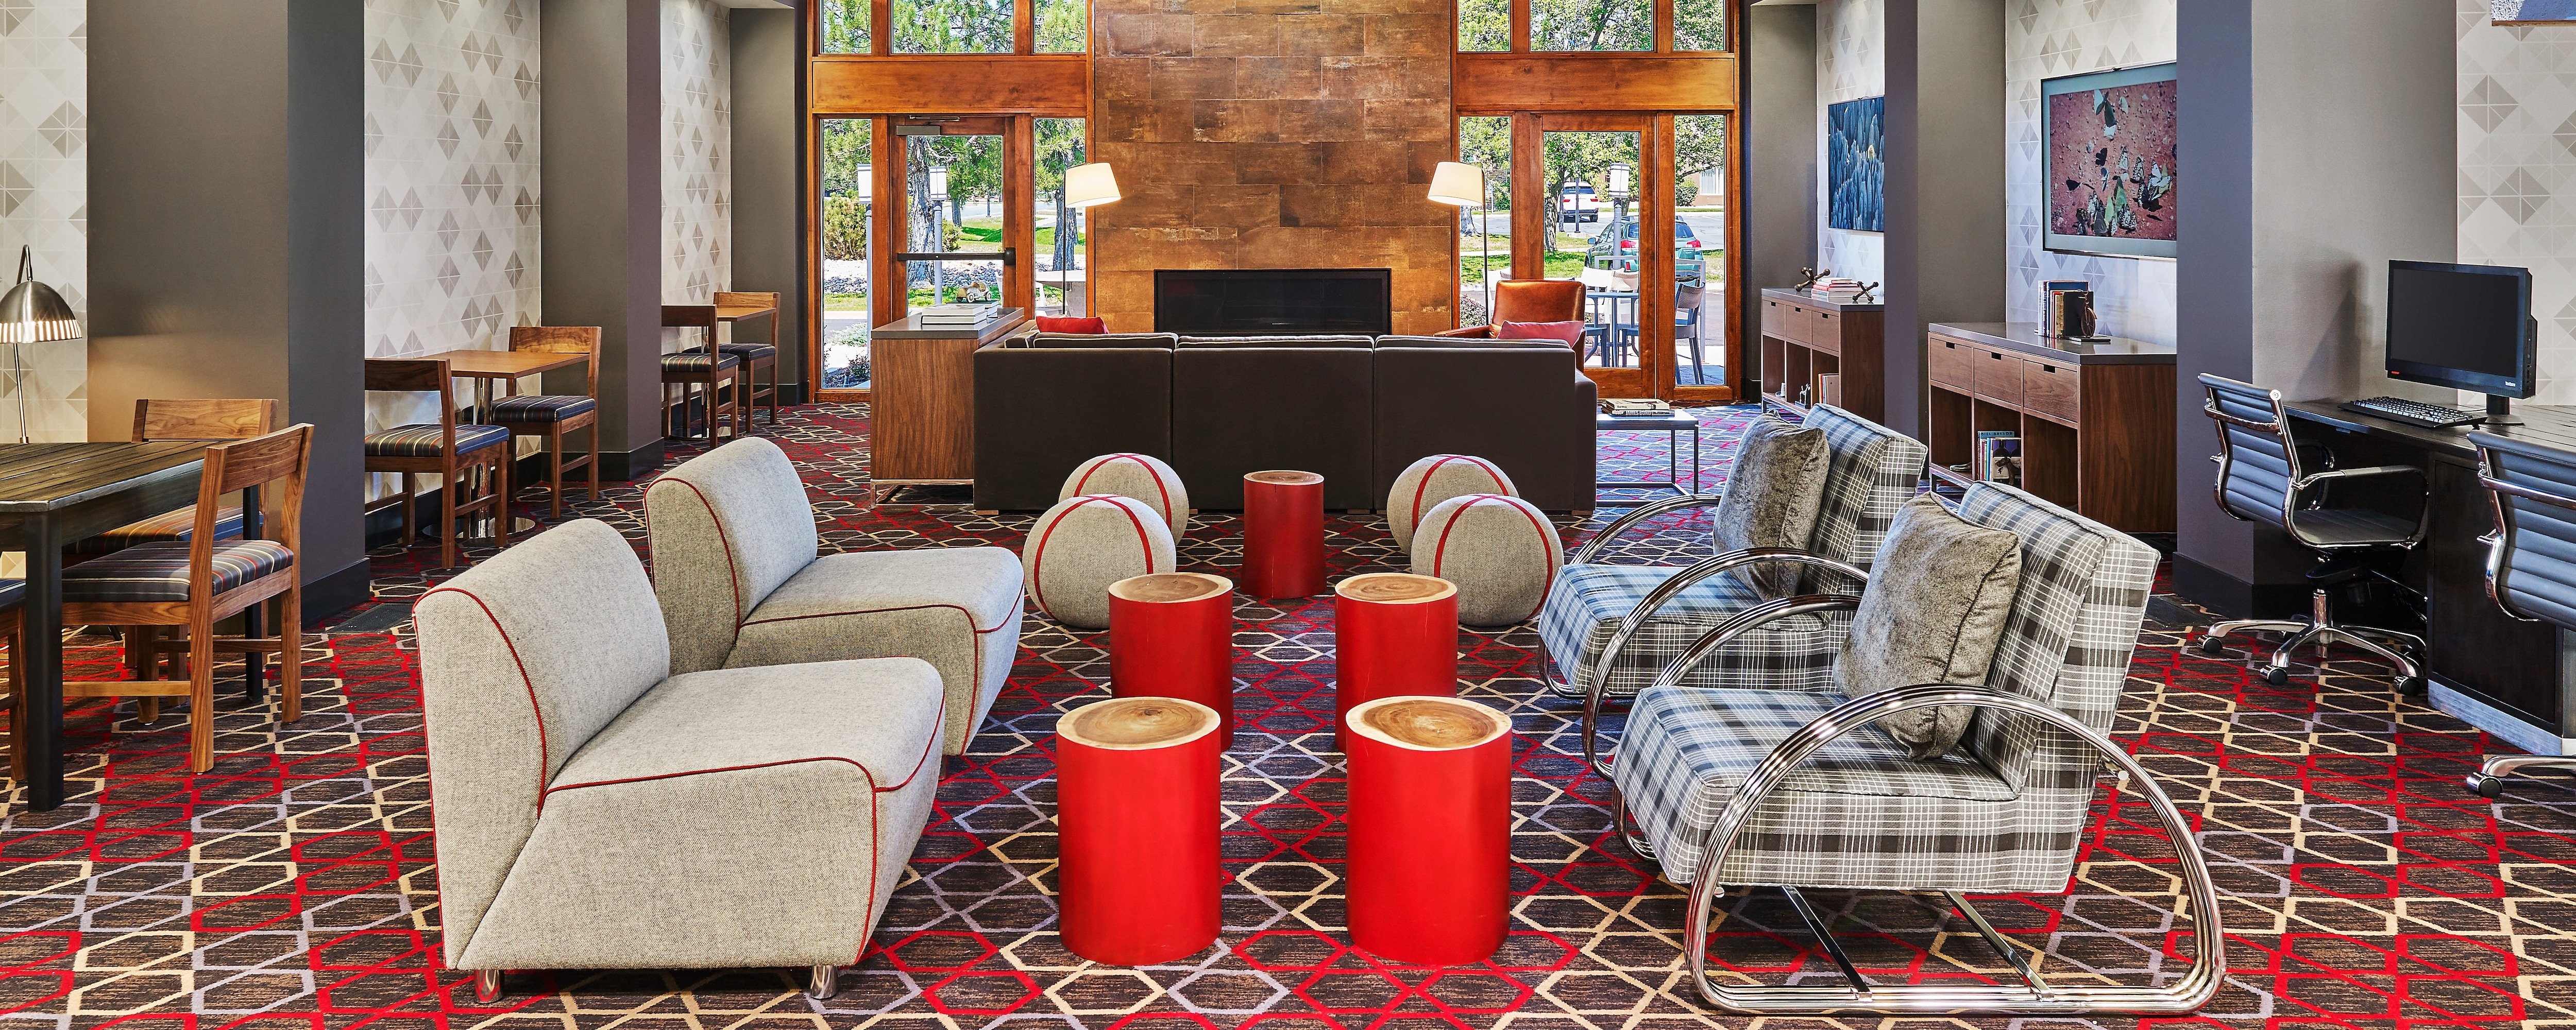 Pick Your Perks at Four Points by Sheraton Salt Lake City Airport